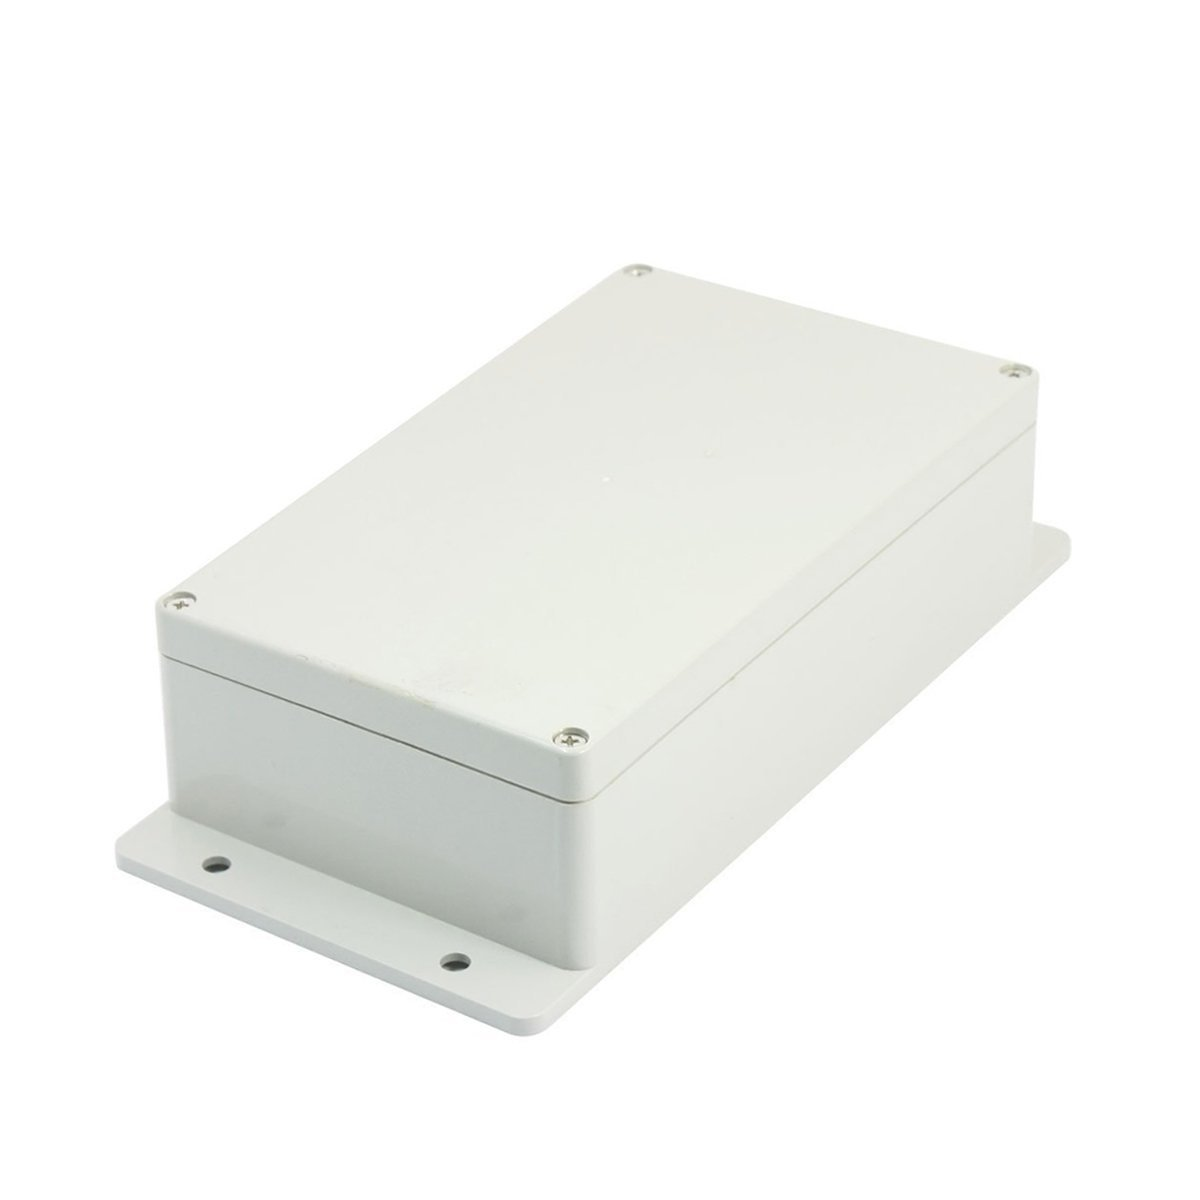 YXQ 200x120x75mm Waterproof Junction Box Enclosure Project Plastic Case with Hole Cable Wire Connect Power Wall Hang